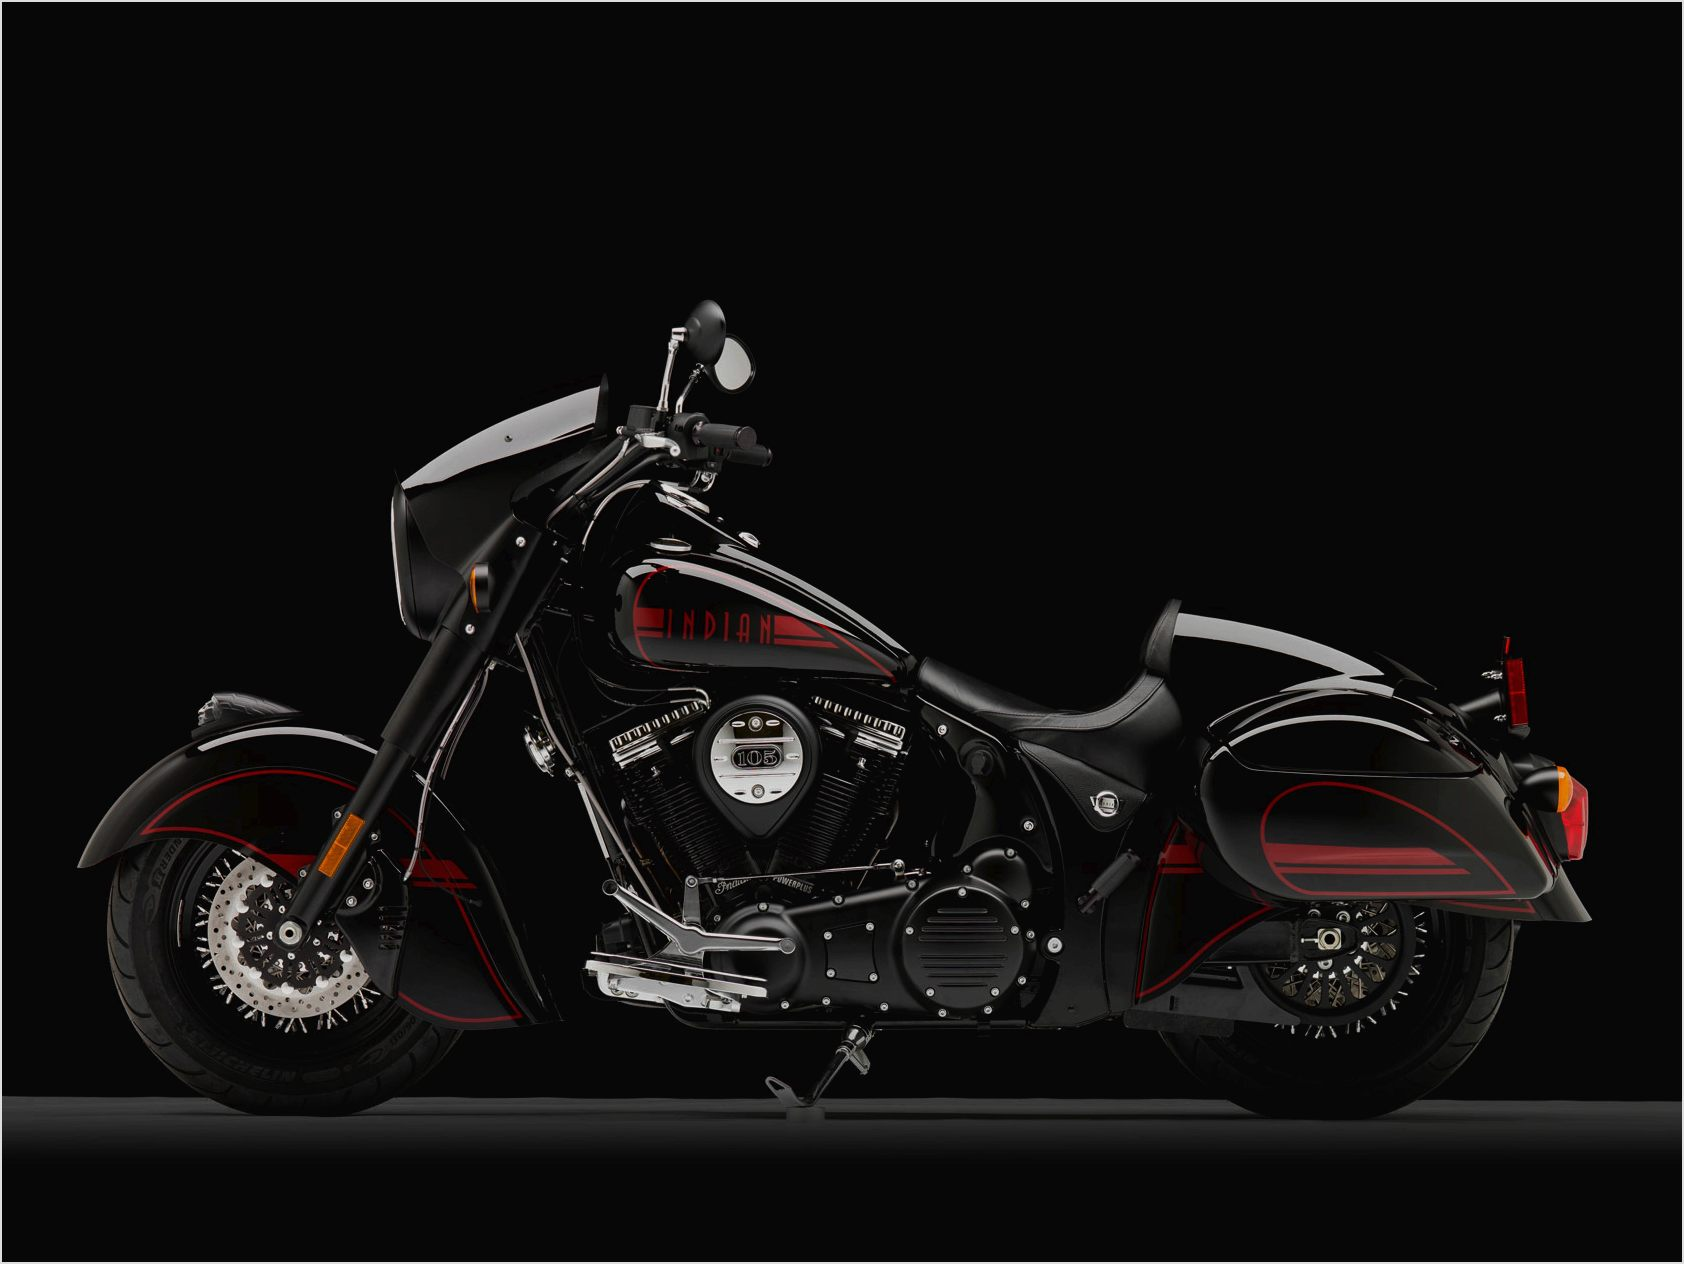 Indian Chief Deluxe 2011 images #97855